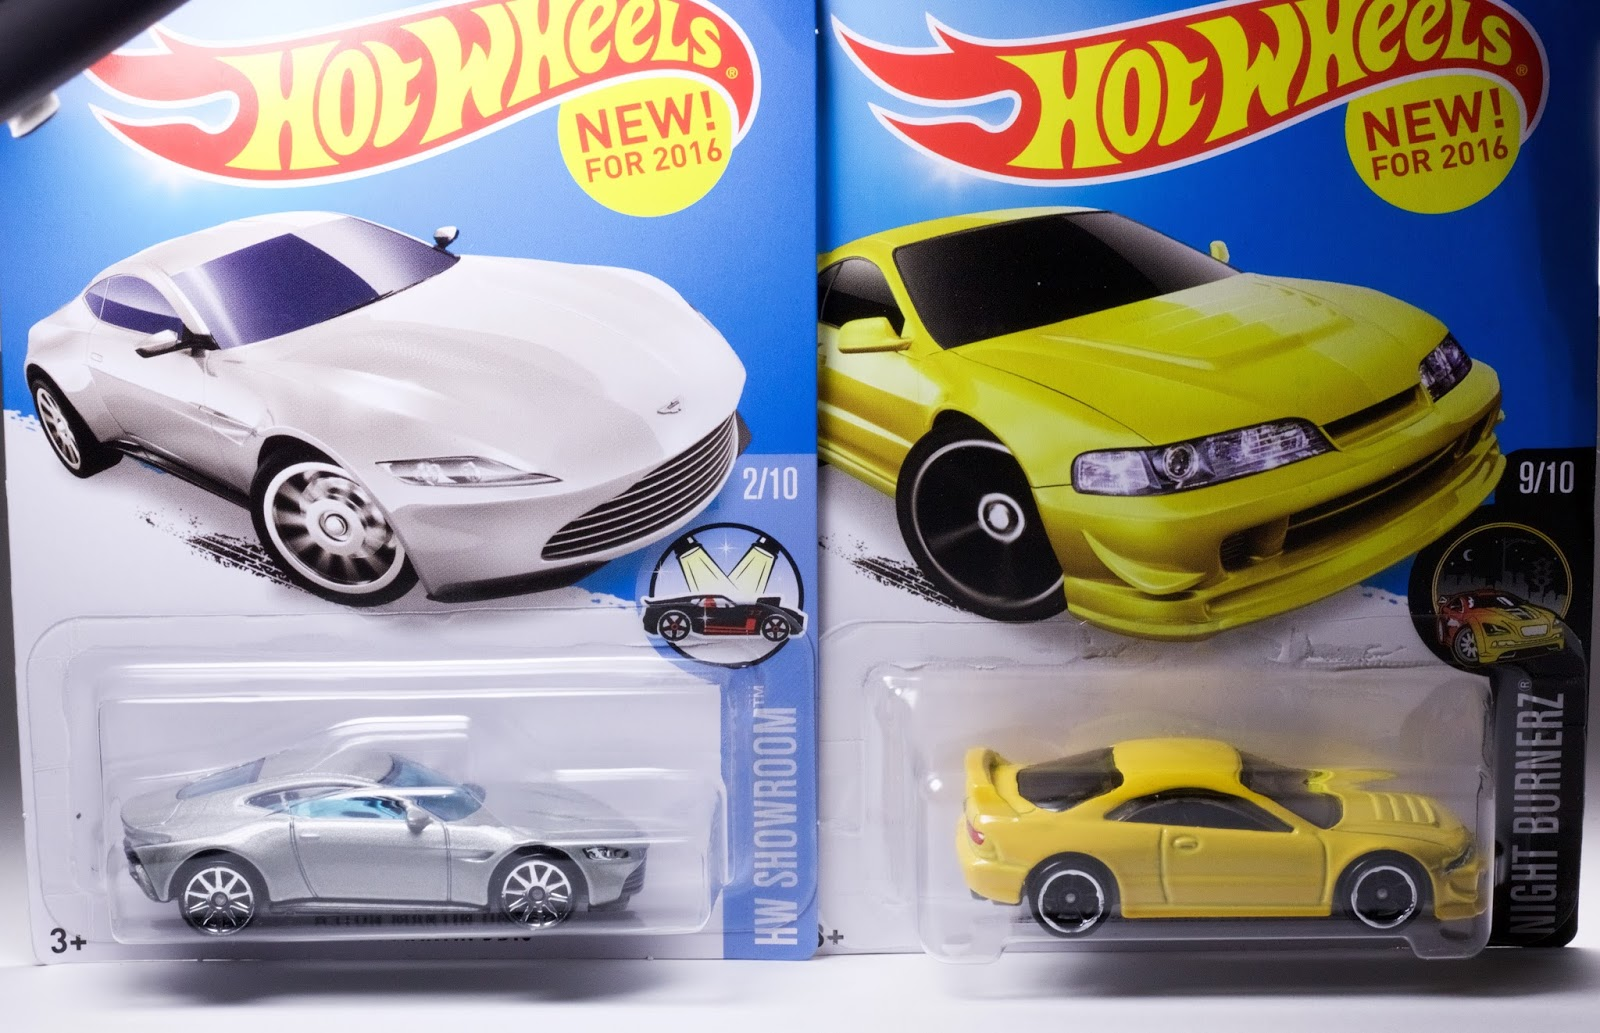 The lamley group case report opening a hot wheels 2016 f for 9 salon hot wheels 2016